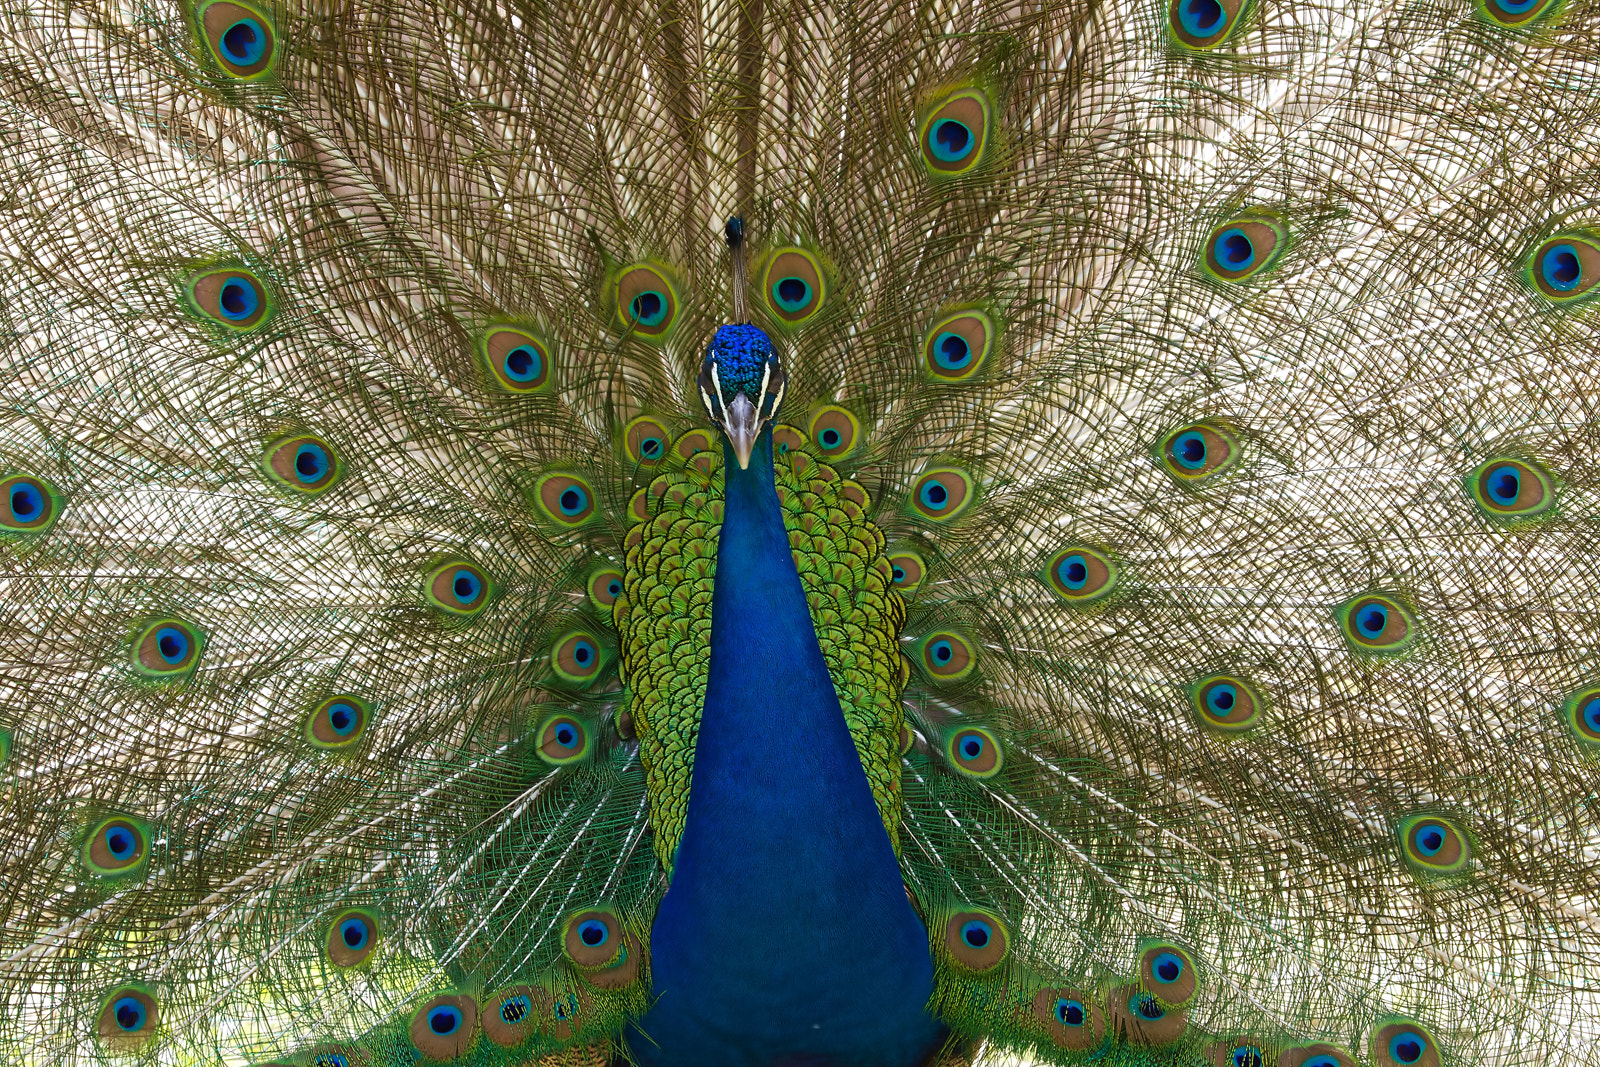 Photograph Peacock's tail by Giovanni Giuliani on 500px